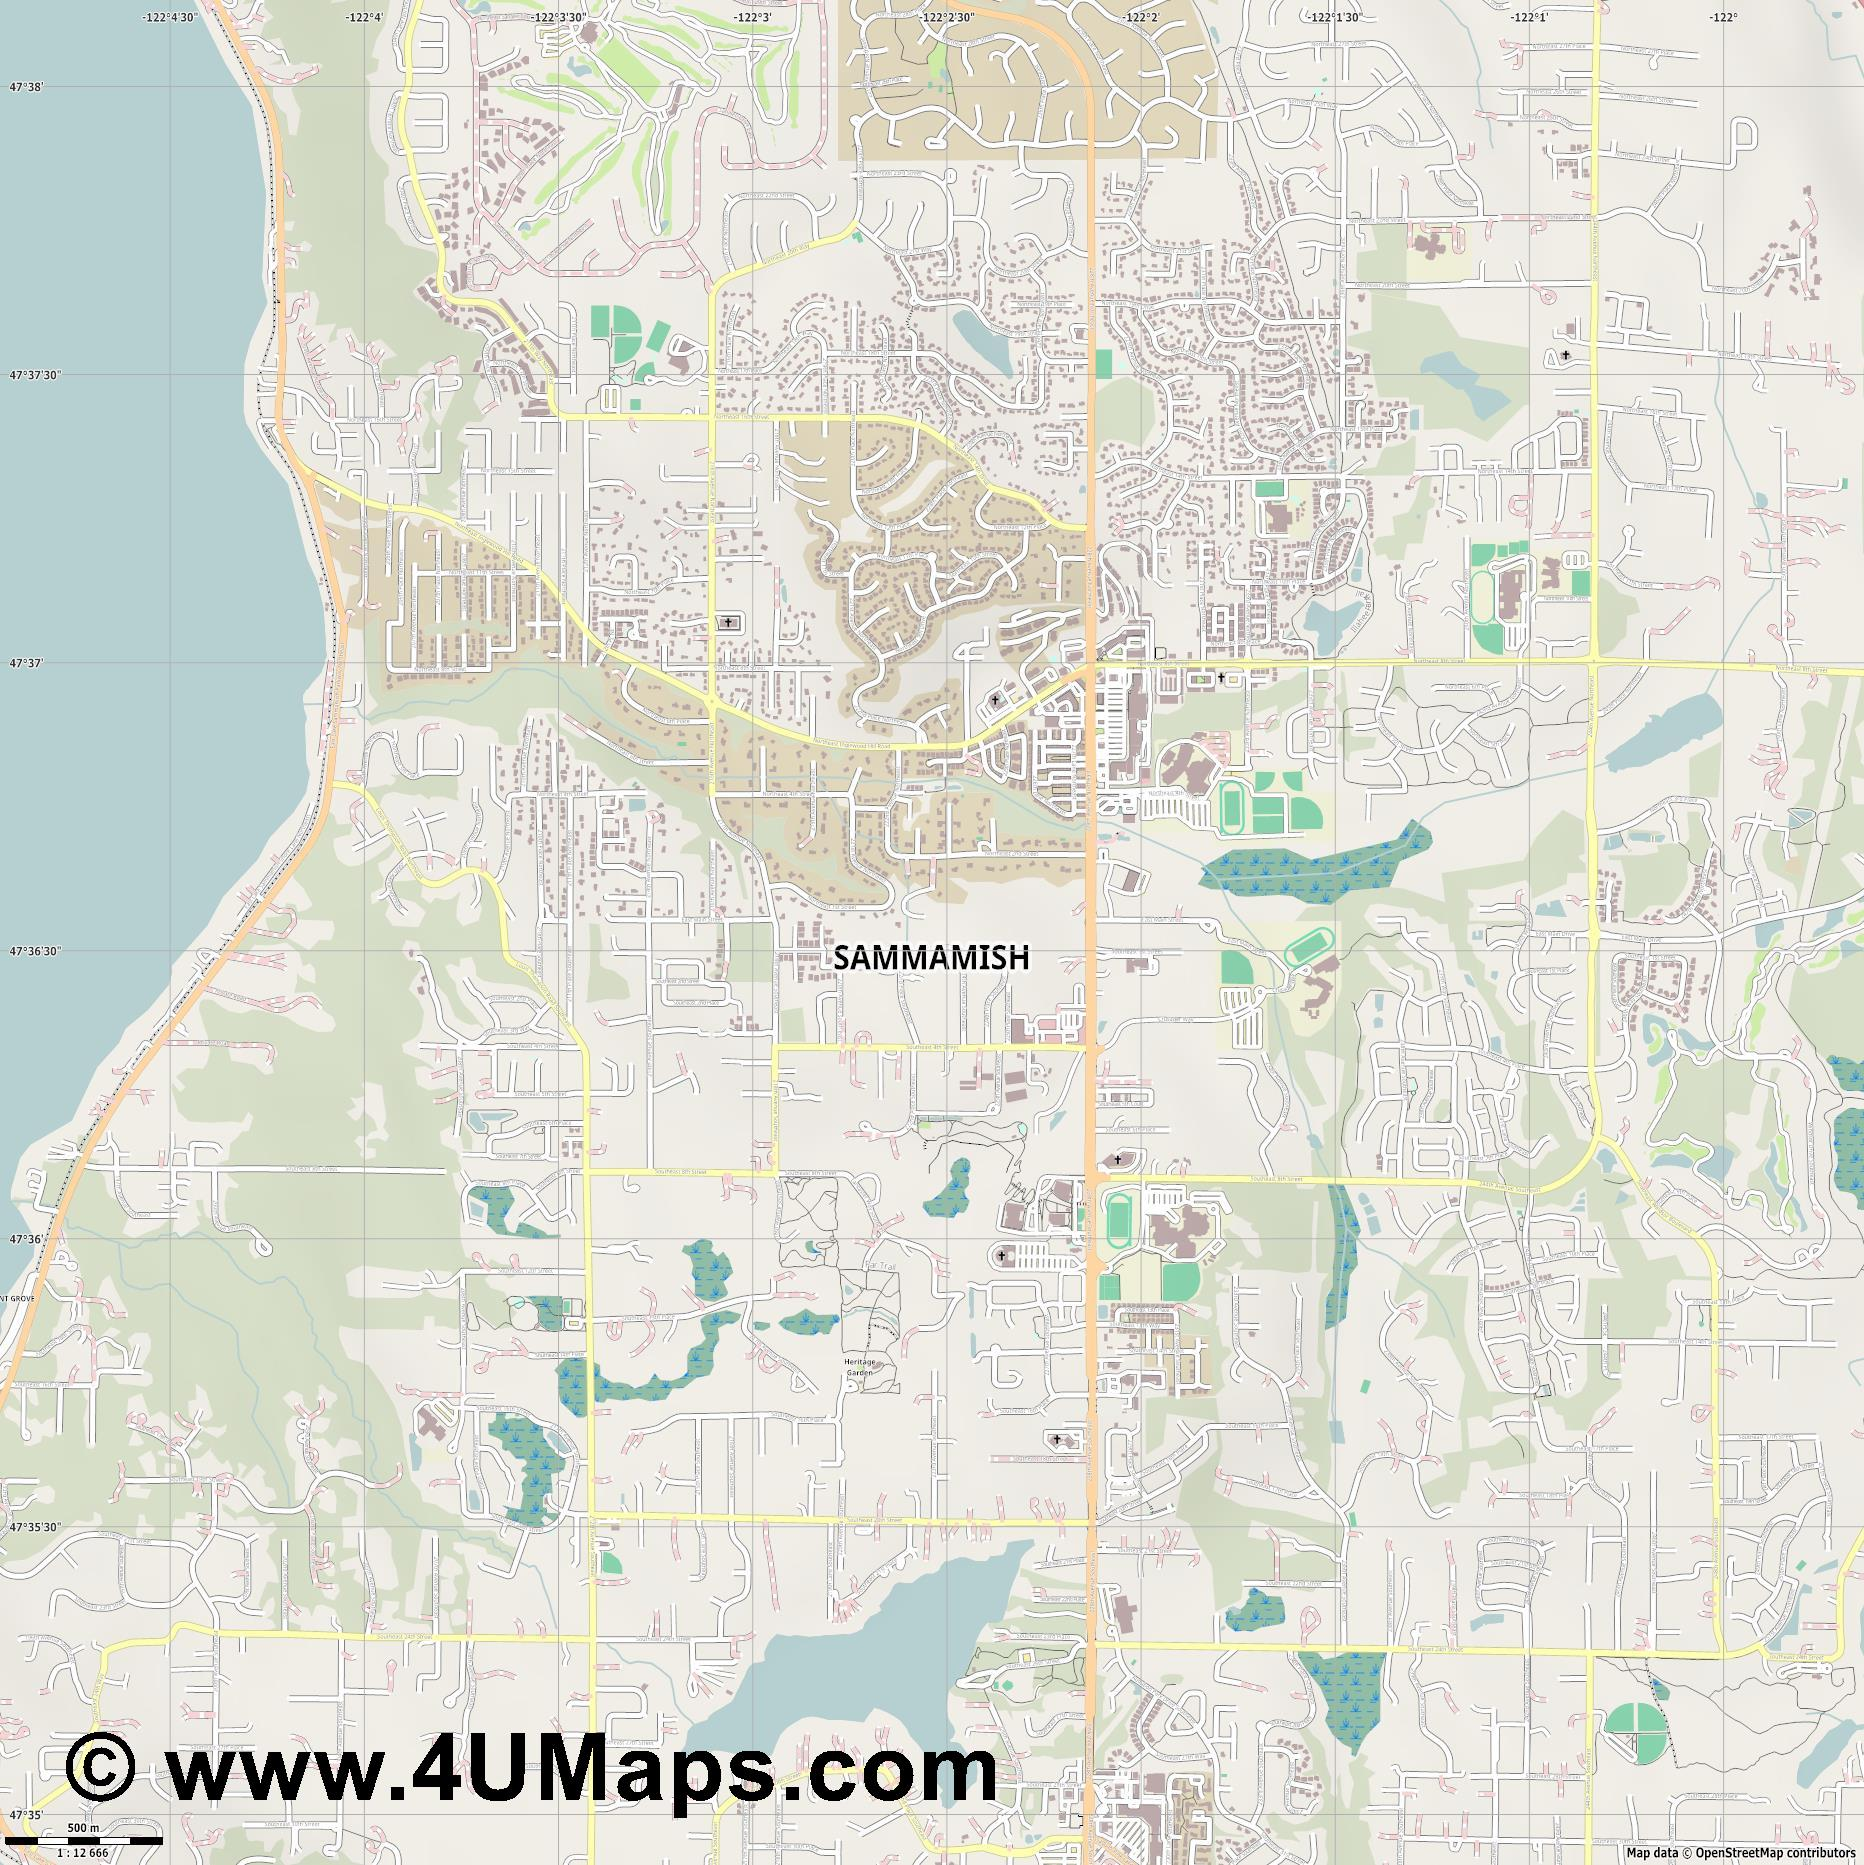 Sammamish  jpg ultra high detail preview vector city map